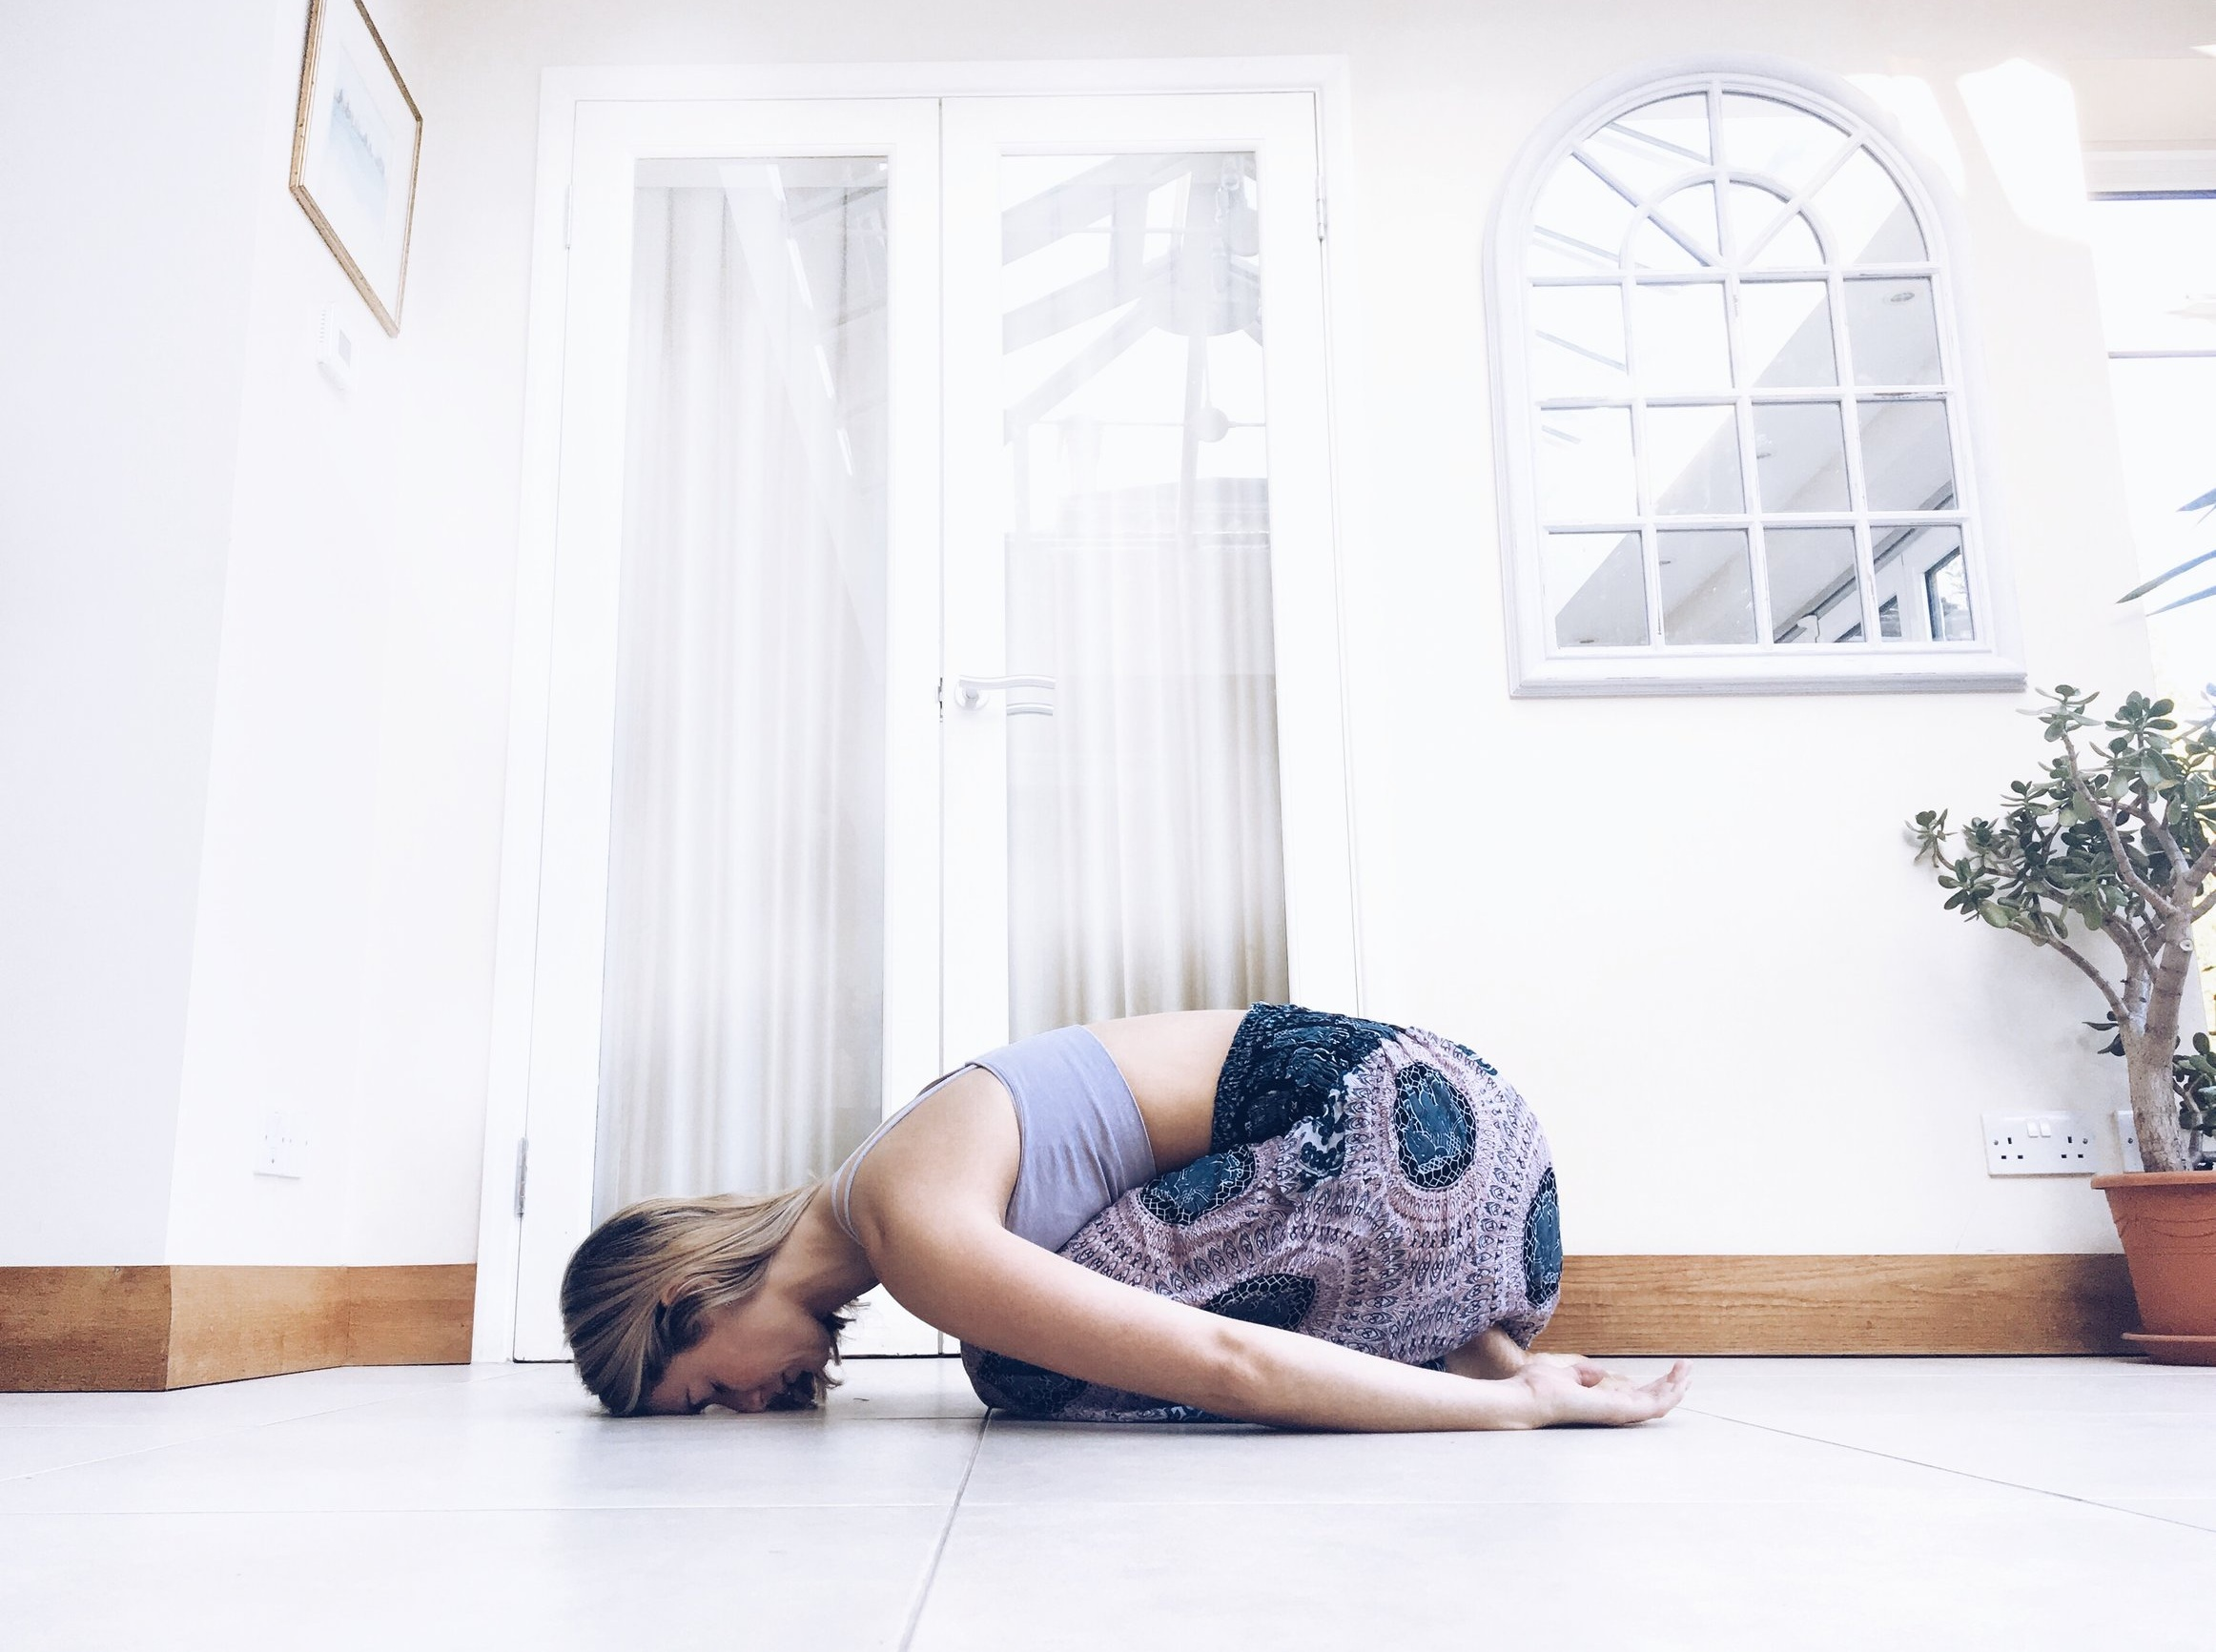 Balasana, Childs Pose